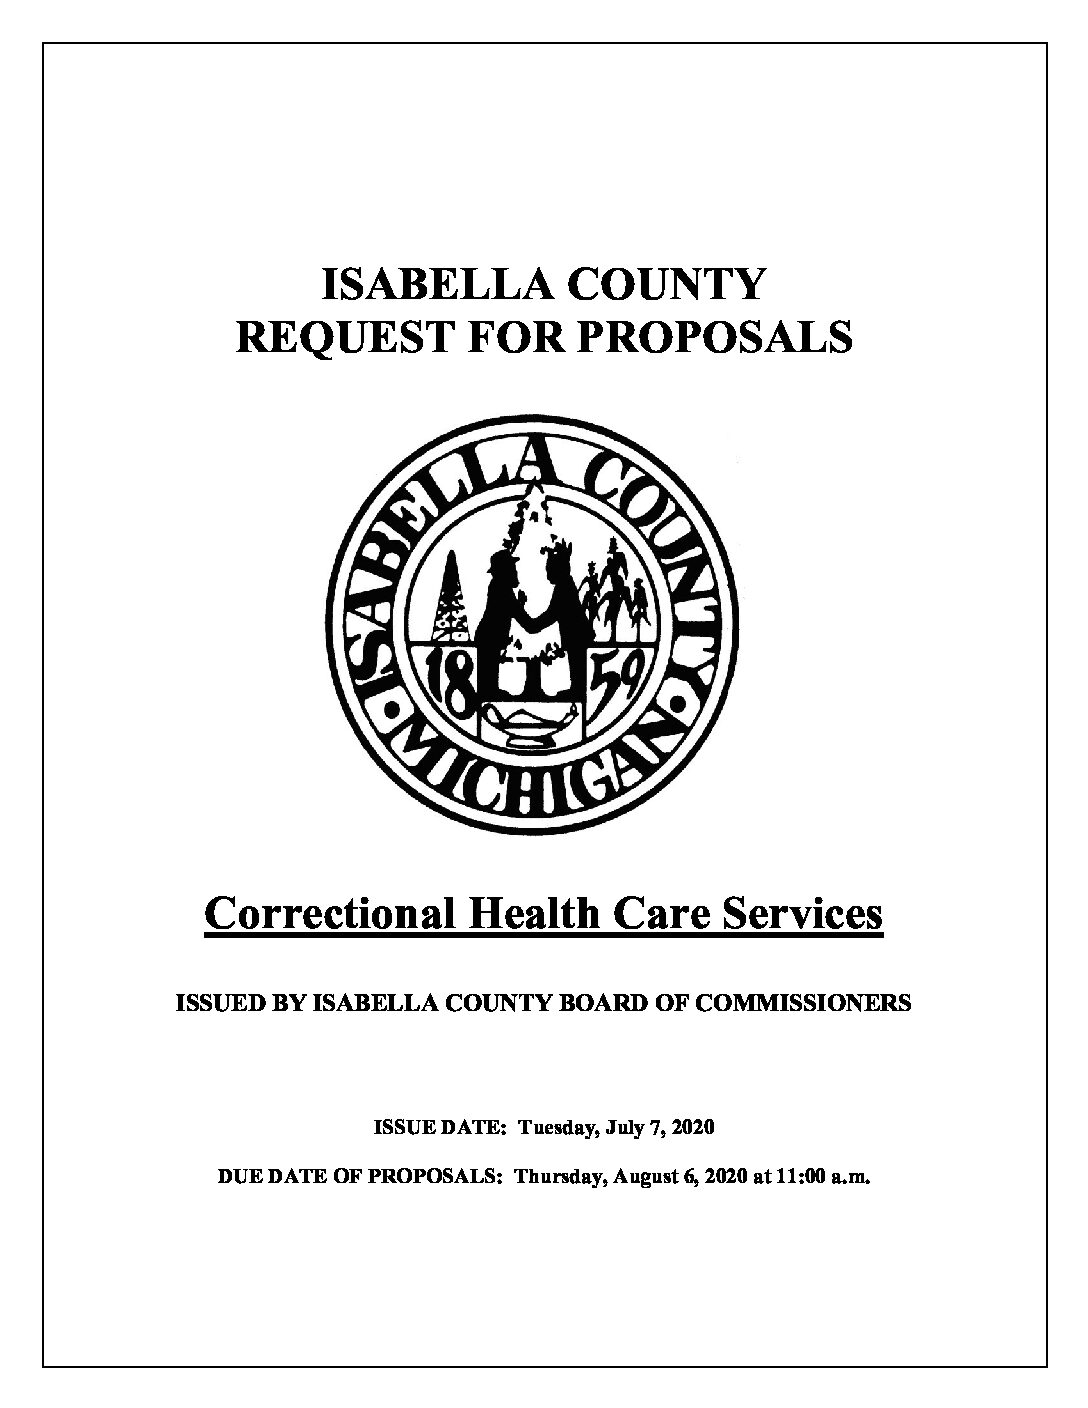 preview image of first page Isabella County Correctional Health Care Services RFP